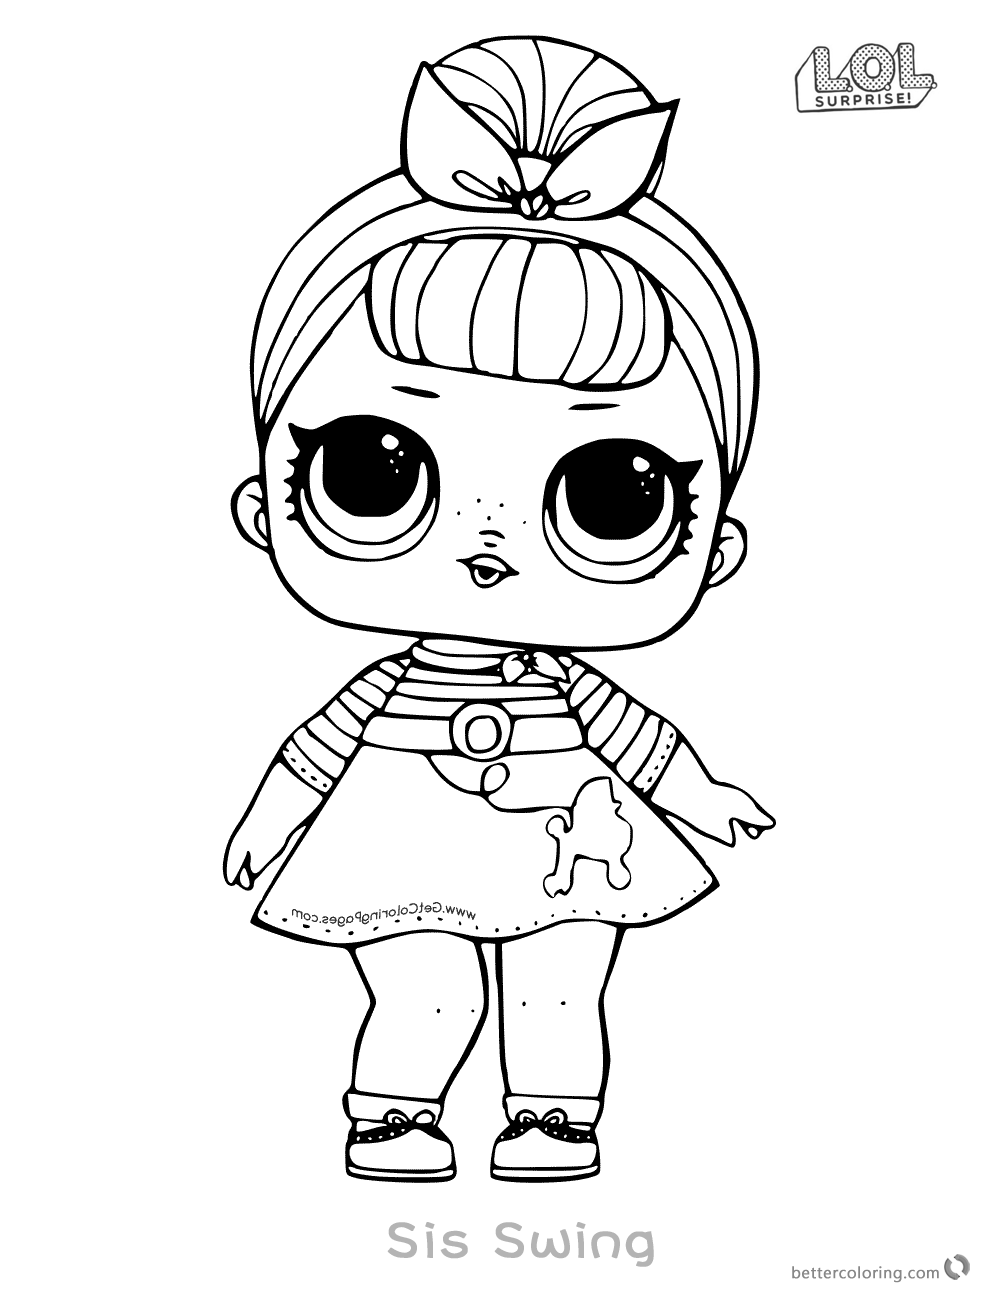 Lol Surprise Doll Coloring Pages Sis Swing Free Printable